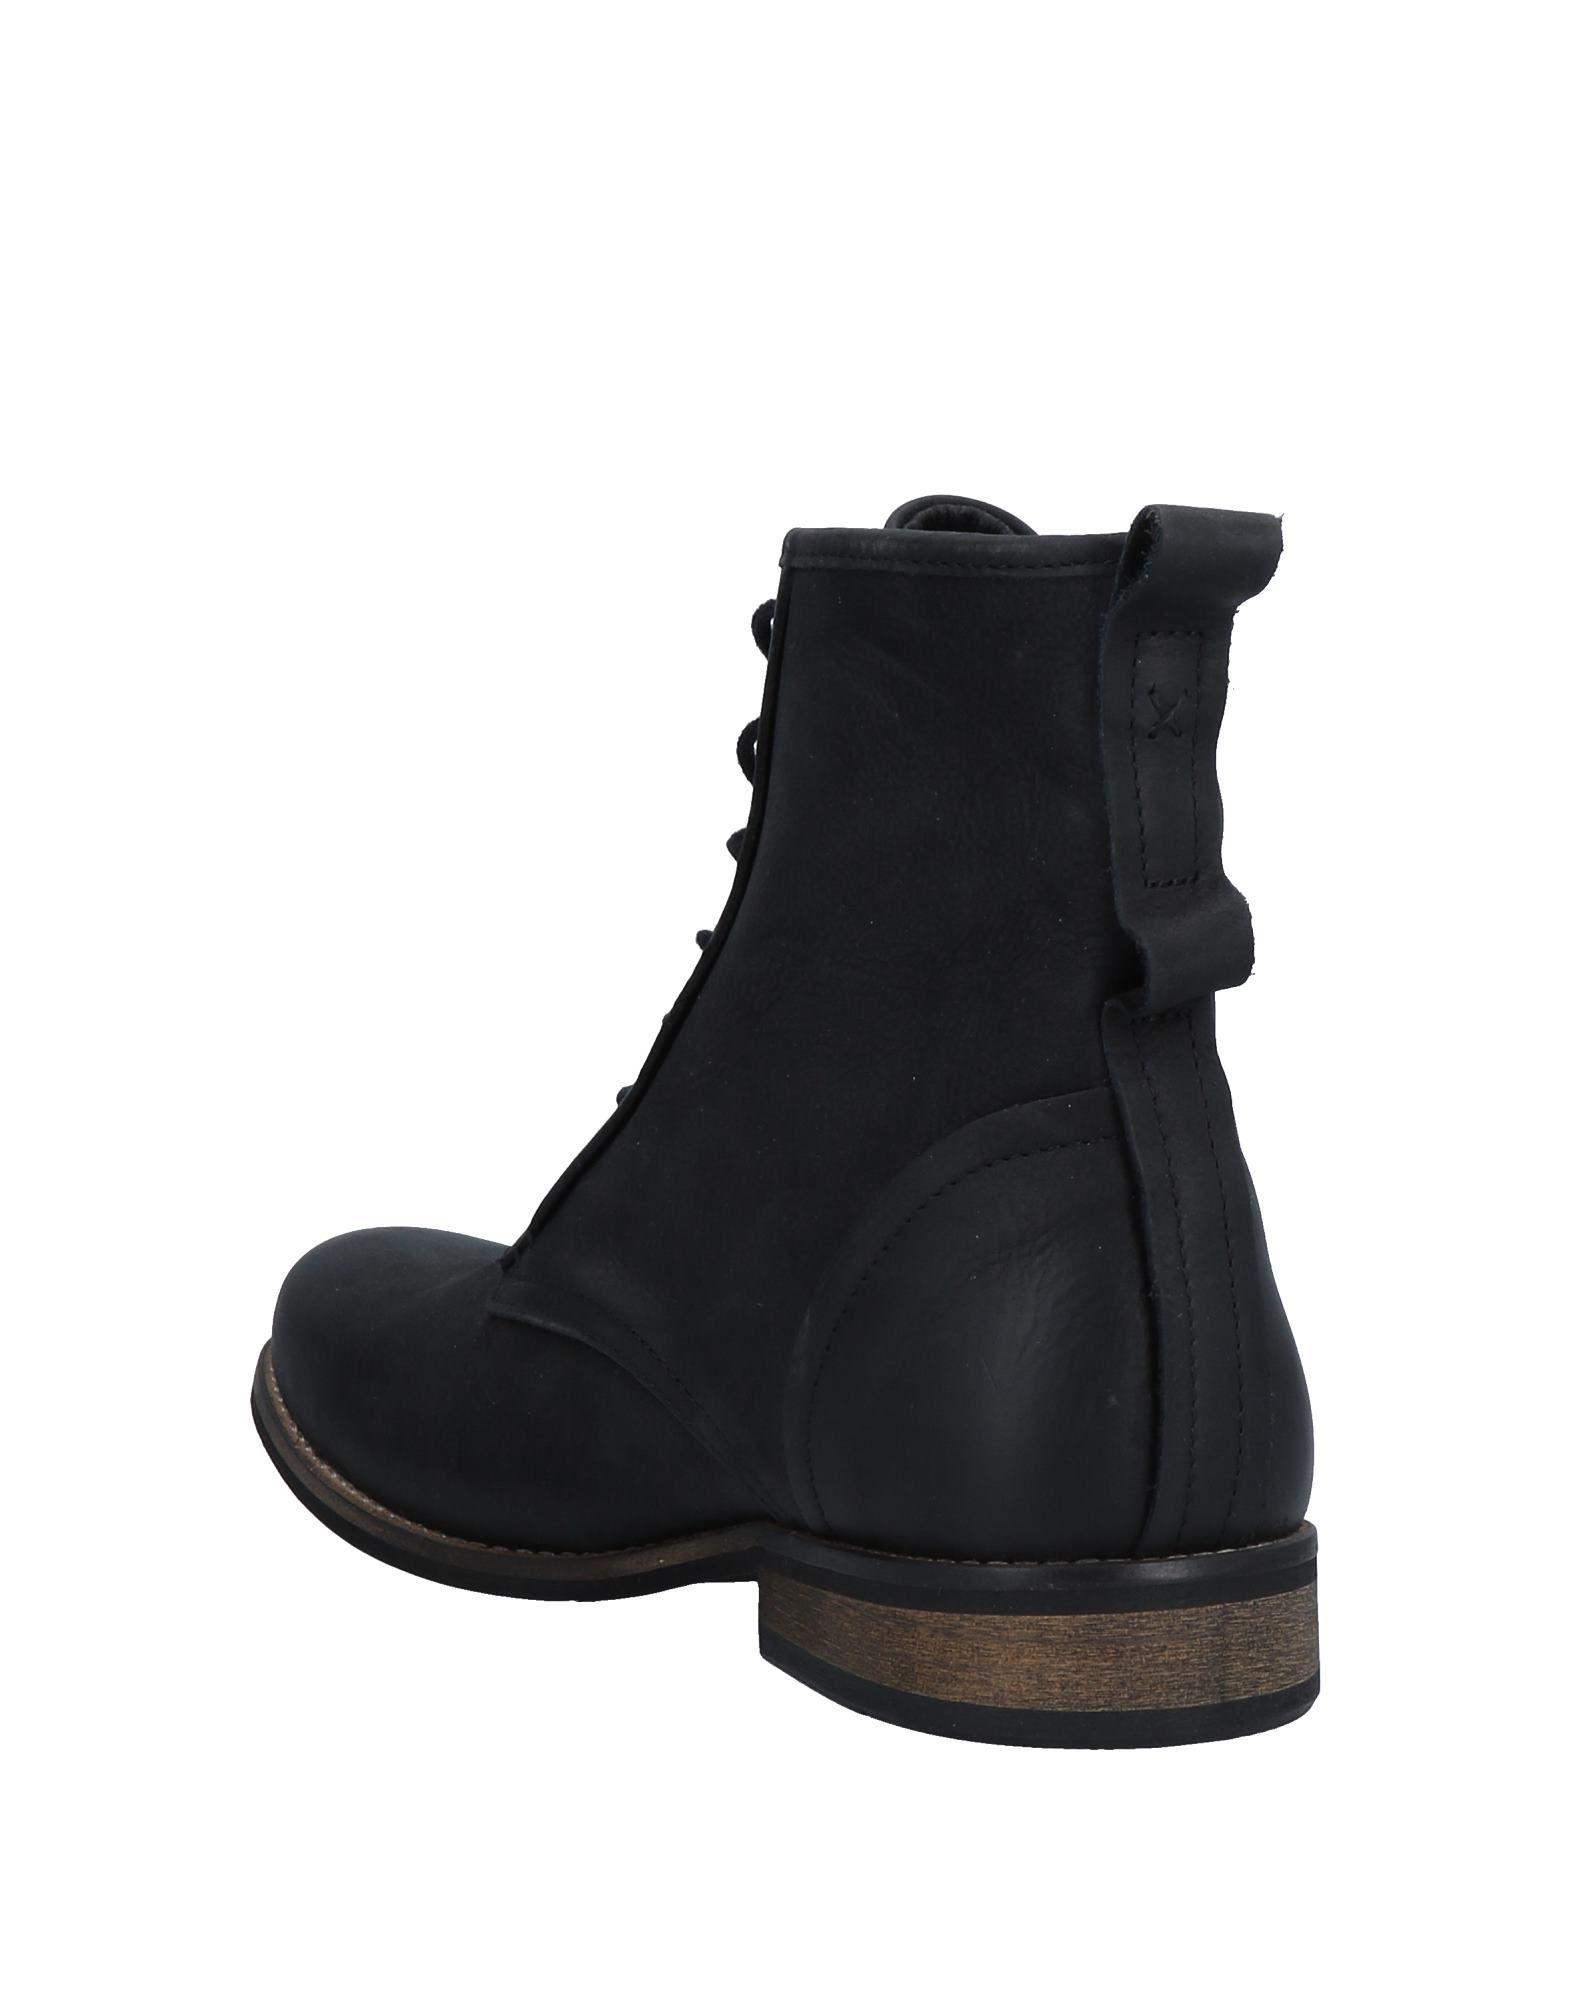 0dbc399cb61a Shoe In Ankle Bear Men For Lyst The Black Boots q7fUxInqwr